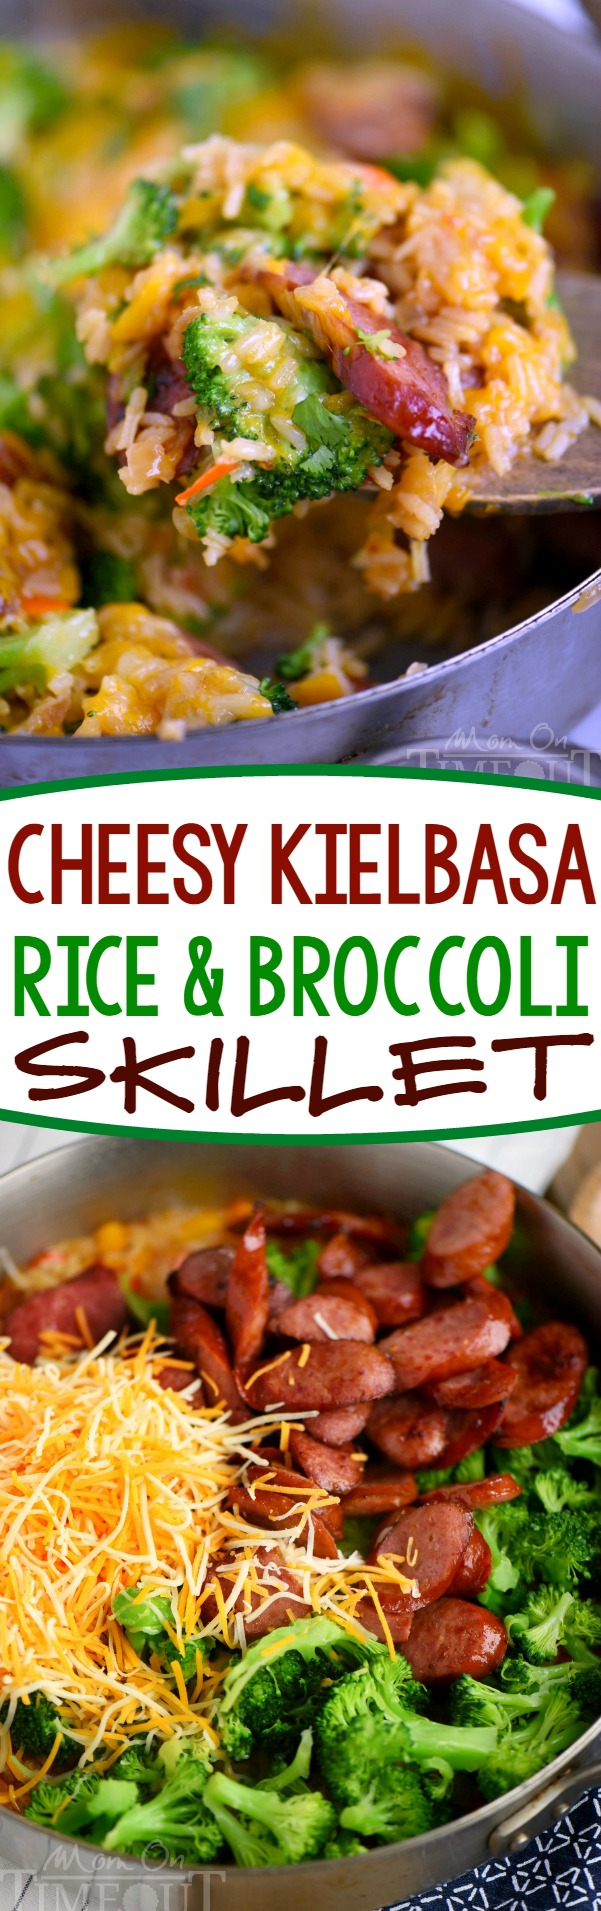 easy dinner cheesy-kielbasa-rice-broccoli-skillet-collage